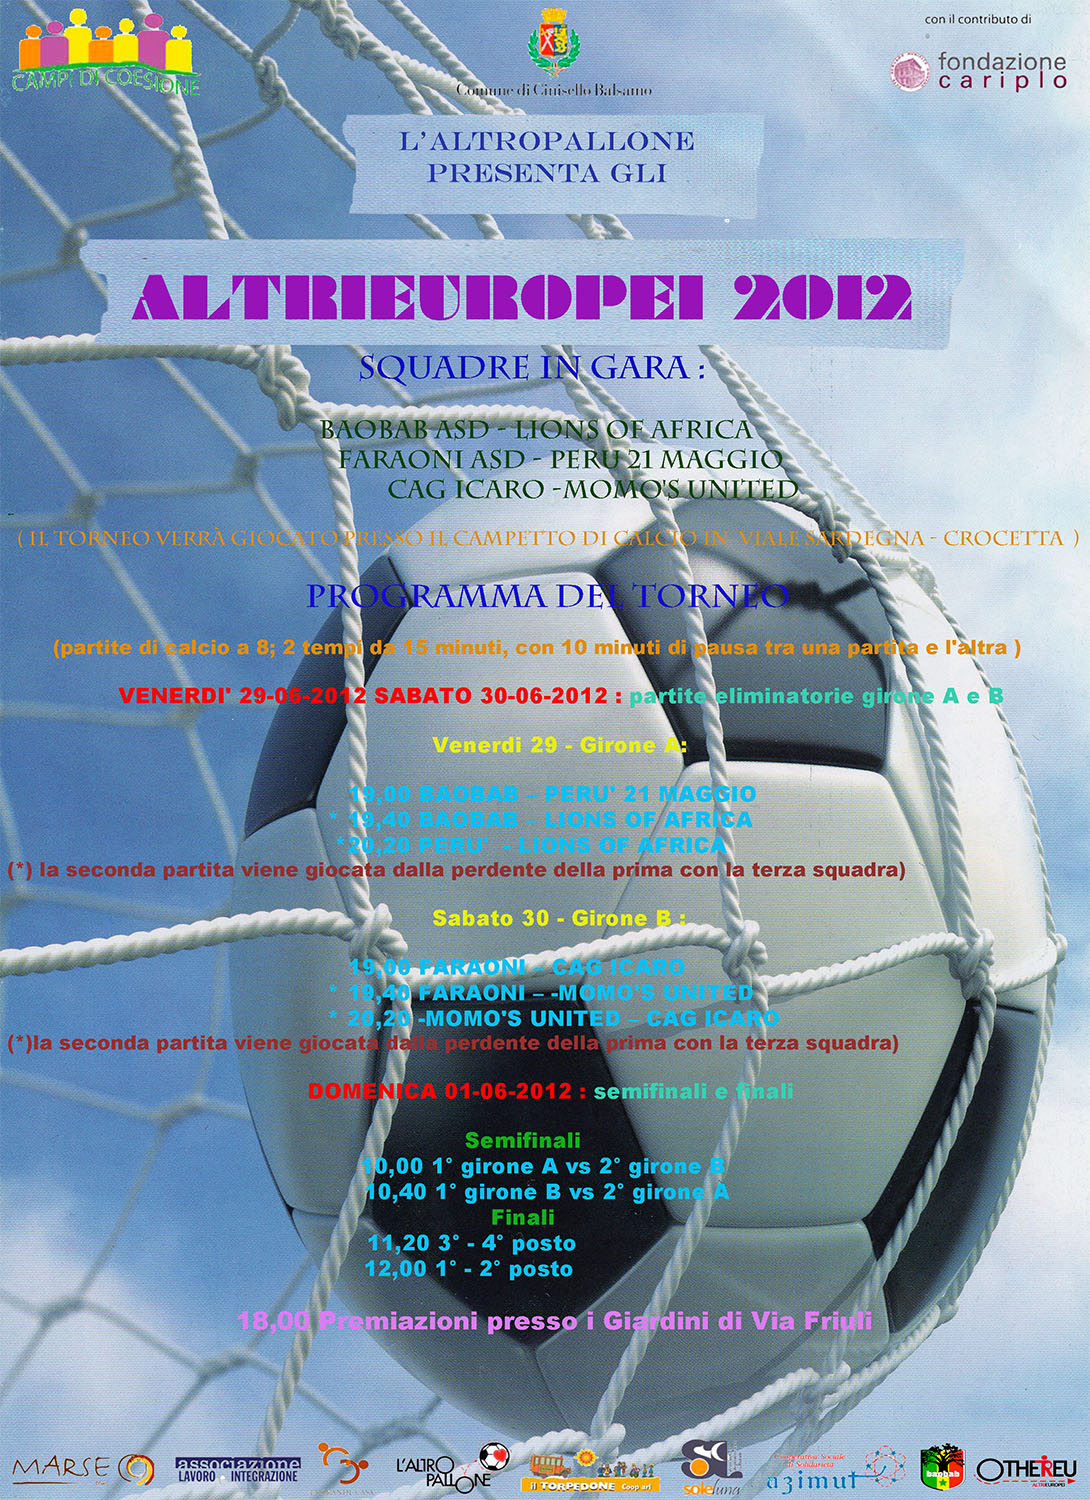 AltriEuropei 2012